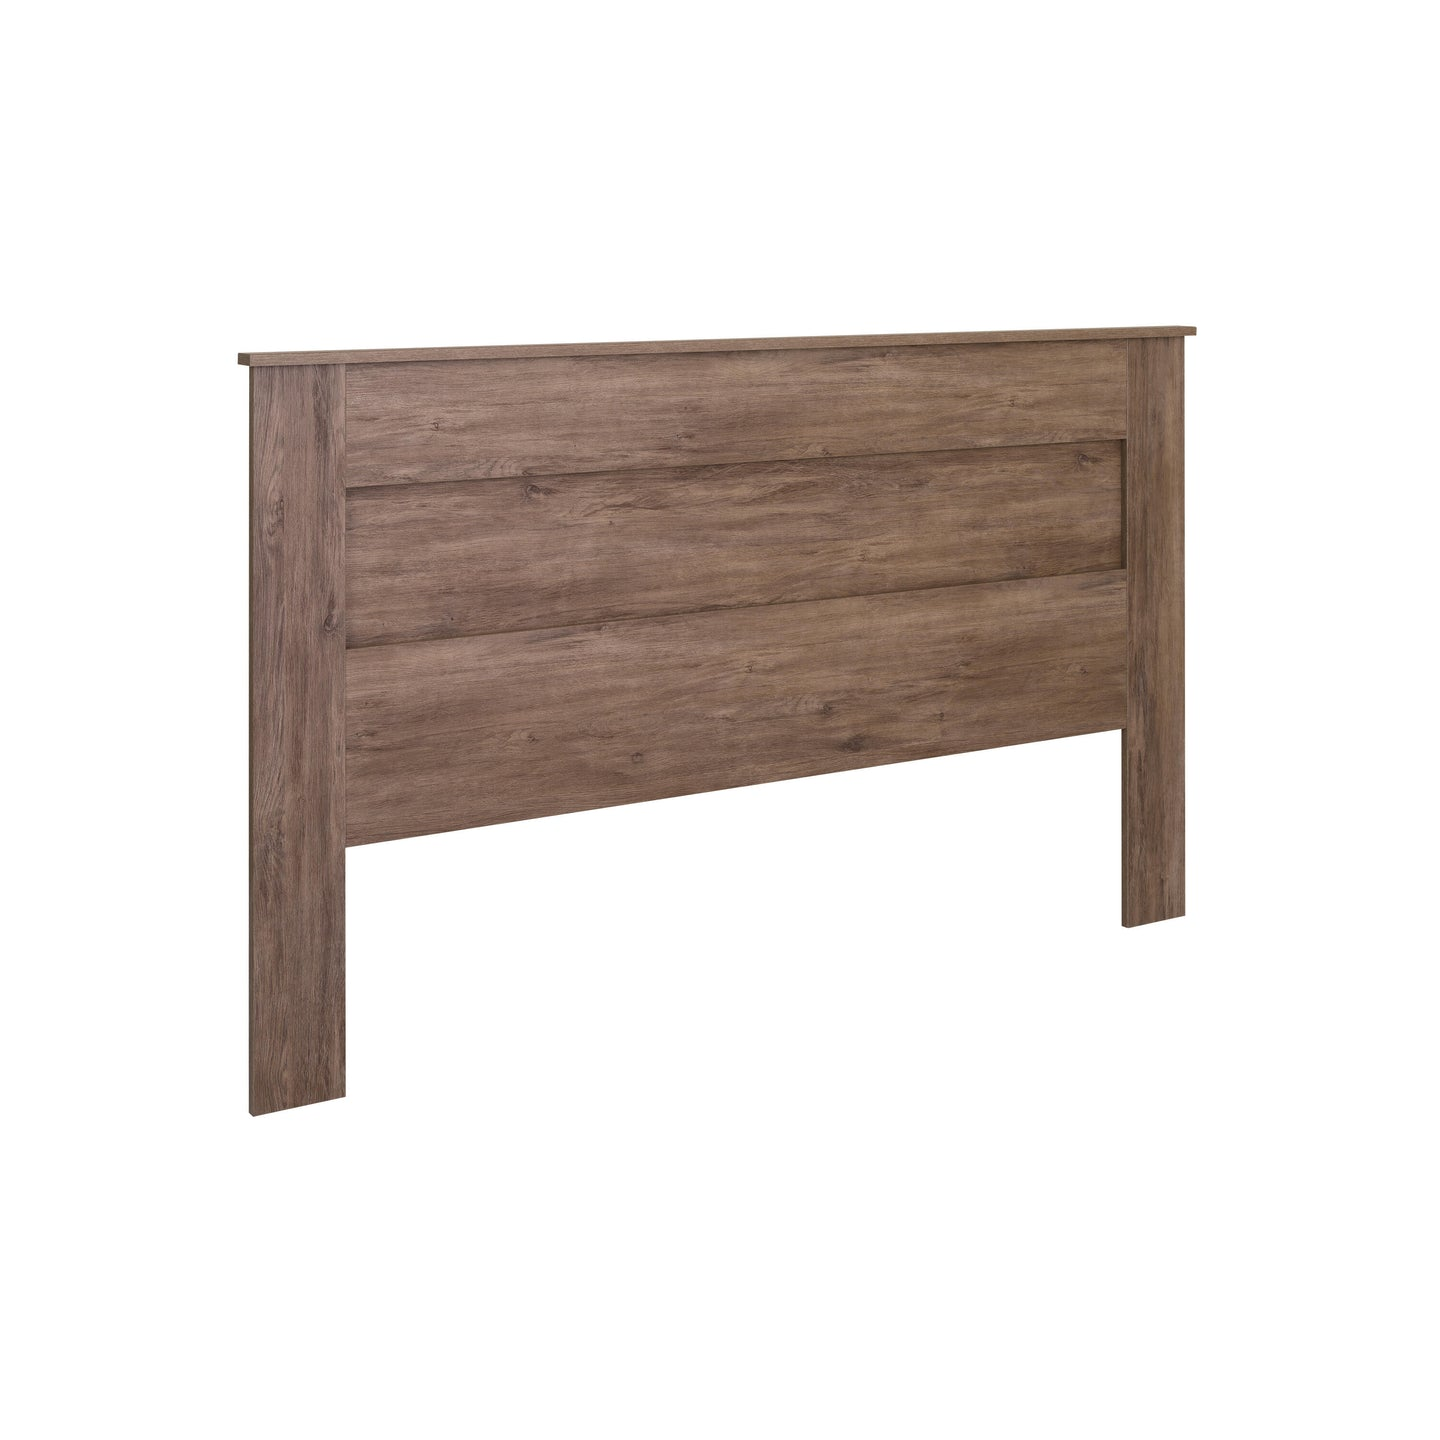 Prepac Milo Gray Wood Finish King Headboard